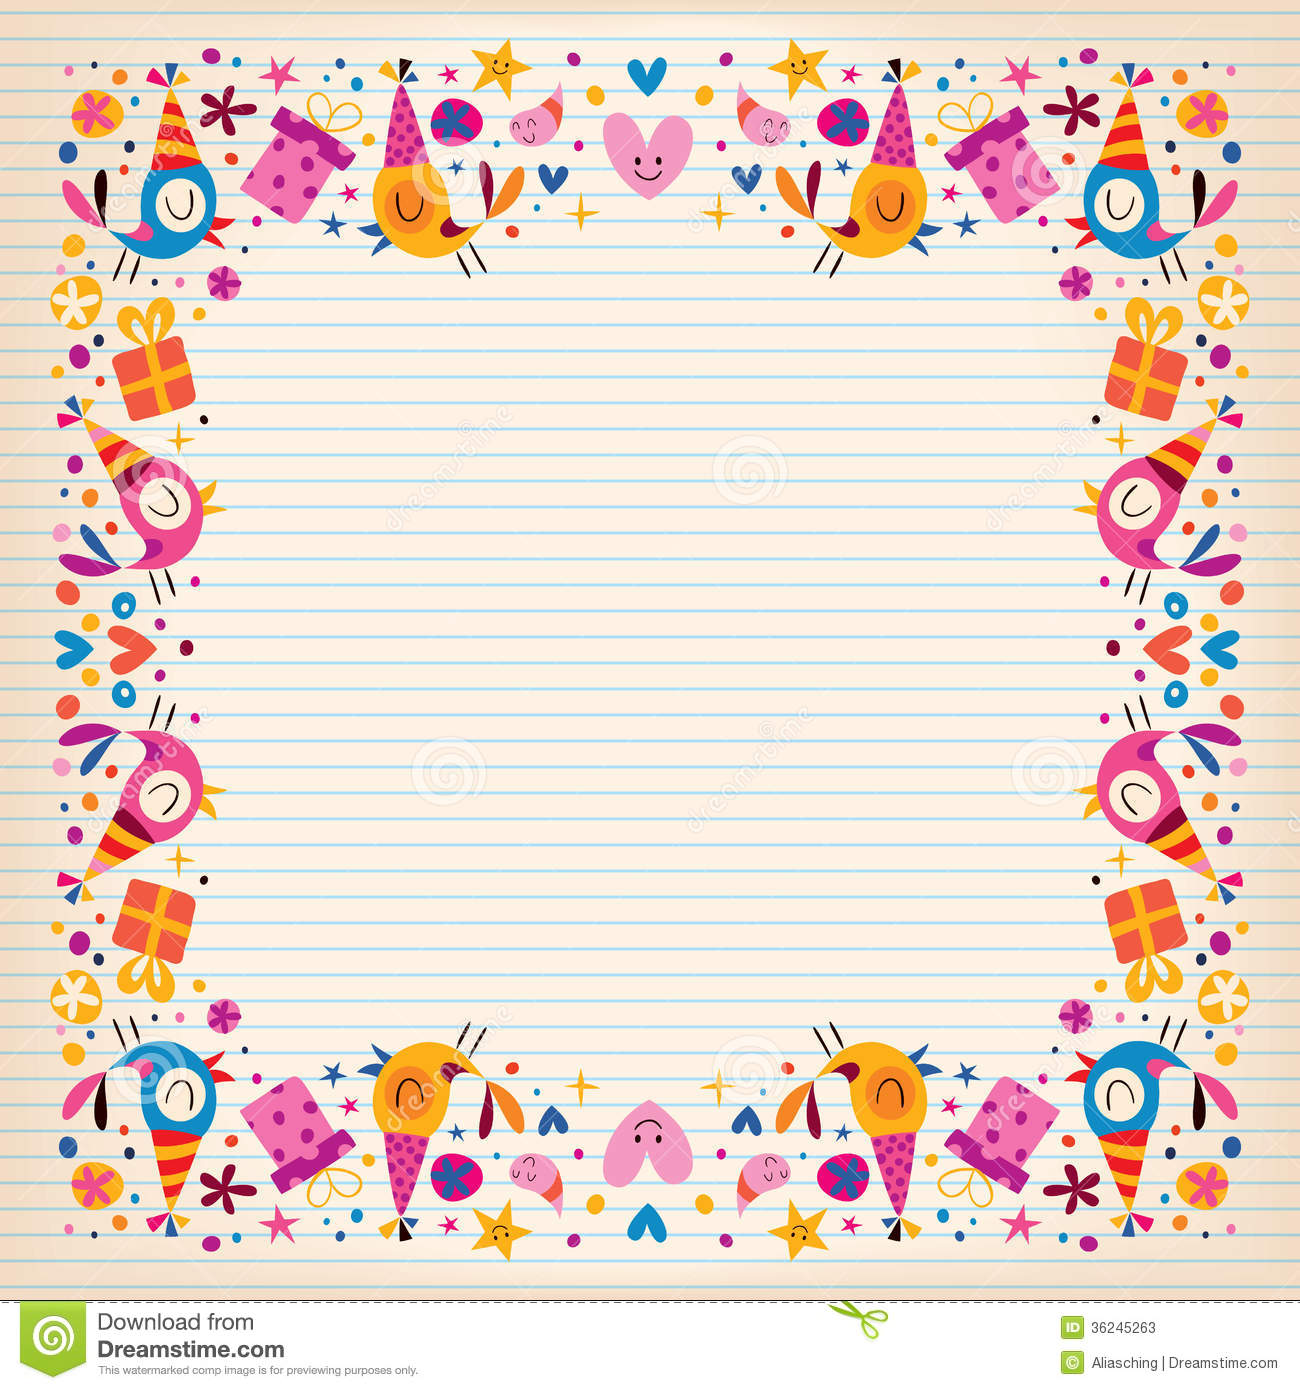 free birthday border paper ; happy-birthday-border-lined-paper-card-space-text-decorative-frame-design-36245263